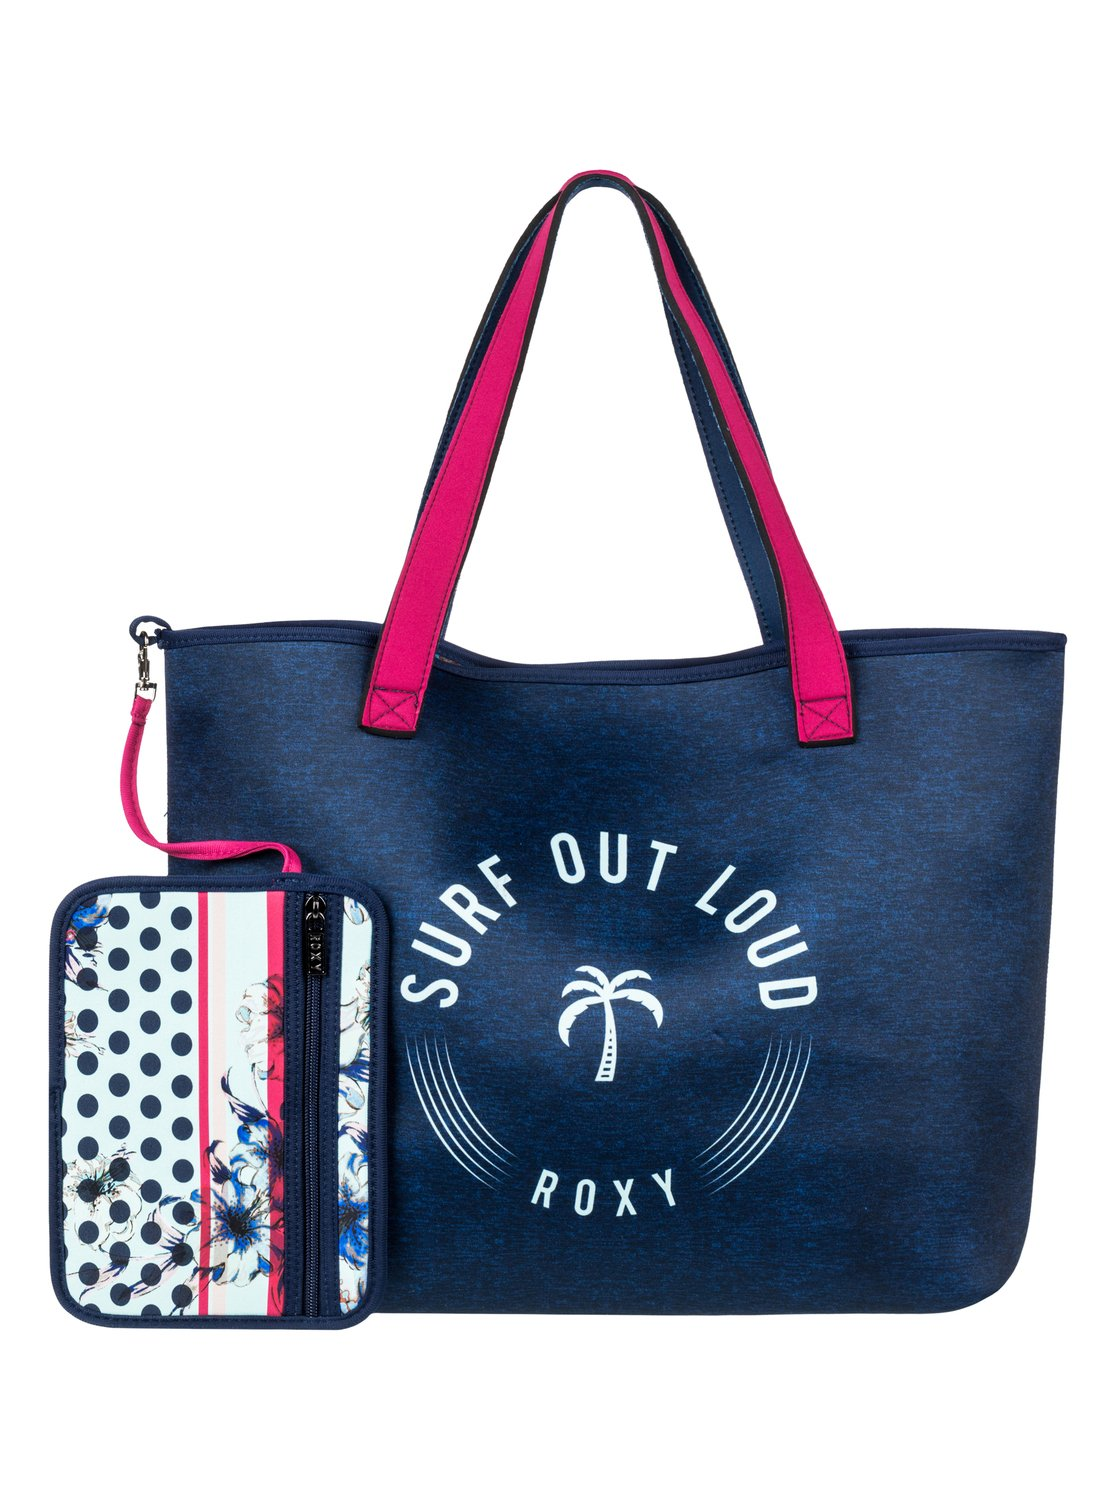 Inside The Rock - Bolsa de Playa de Neopreno Reversible para Mujer Roxy